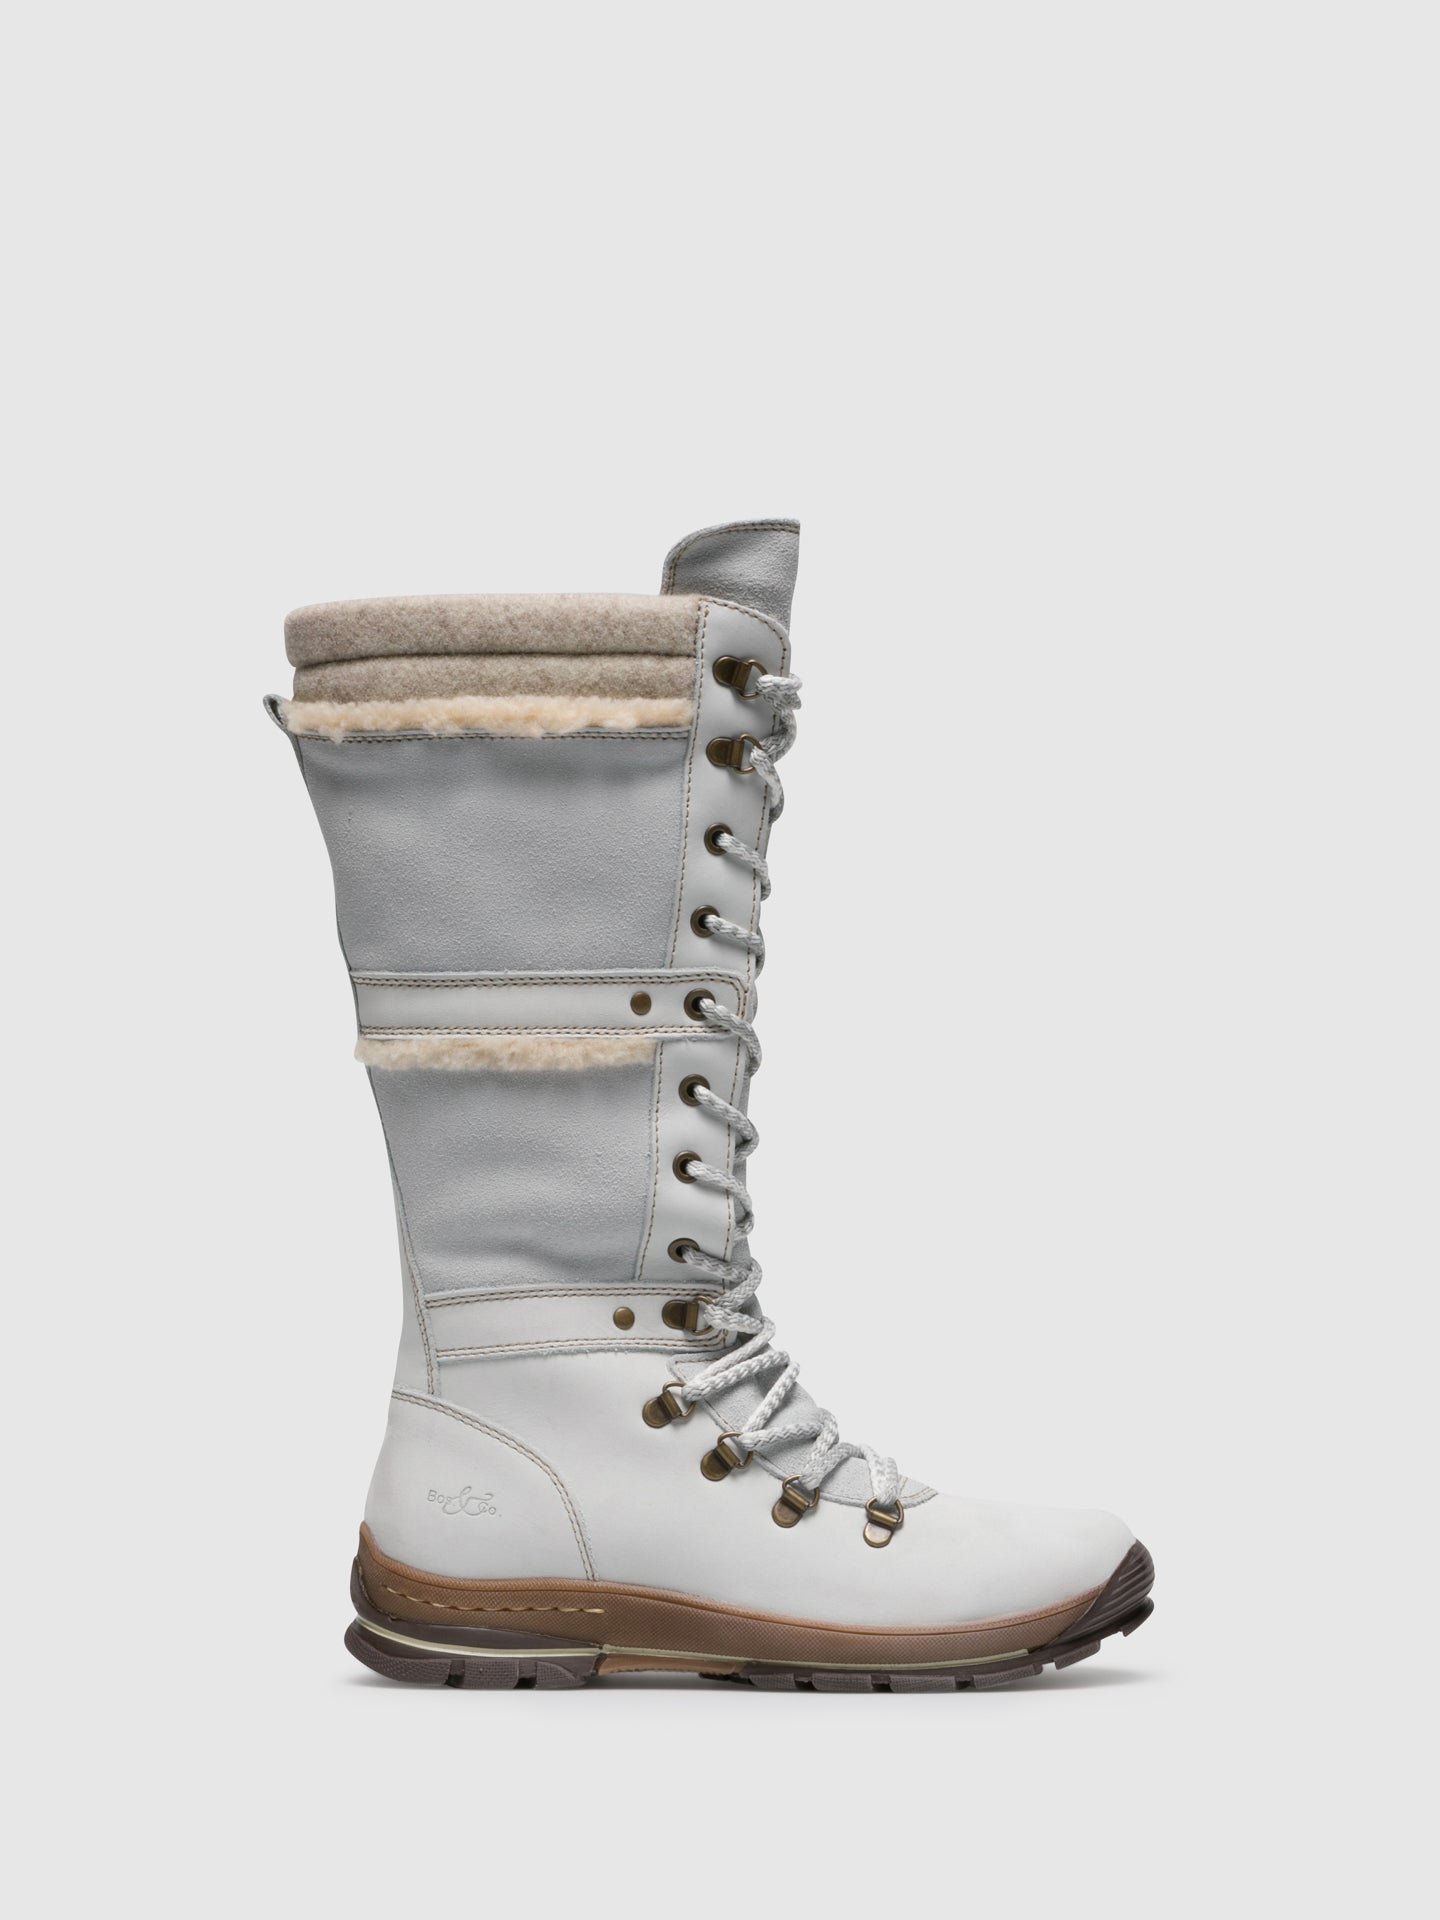 Bos&Co White Leather Lace-up Boots